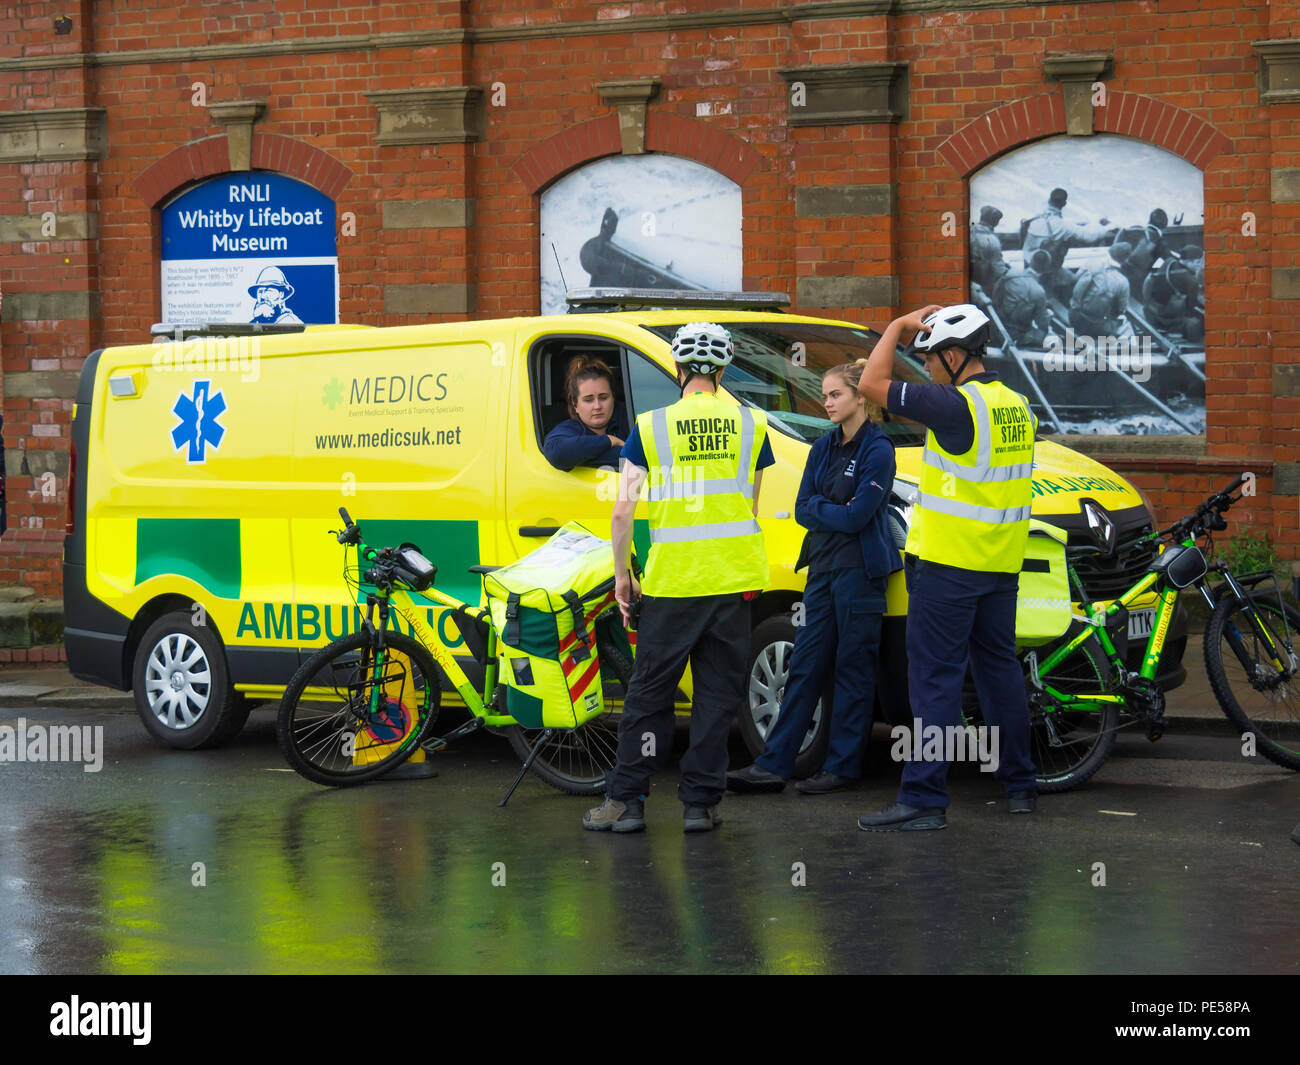 Medics Emergency Response Ambulance service on bicycles in crowded town centre not easily accessible for vehicles during the Whitby Regatta Stock Photo